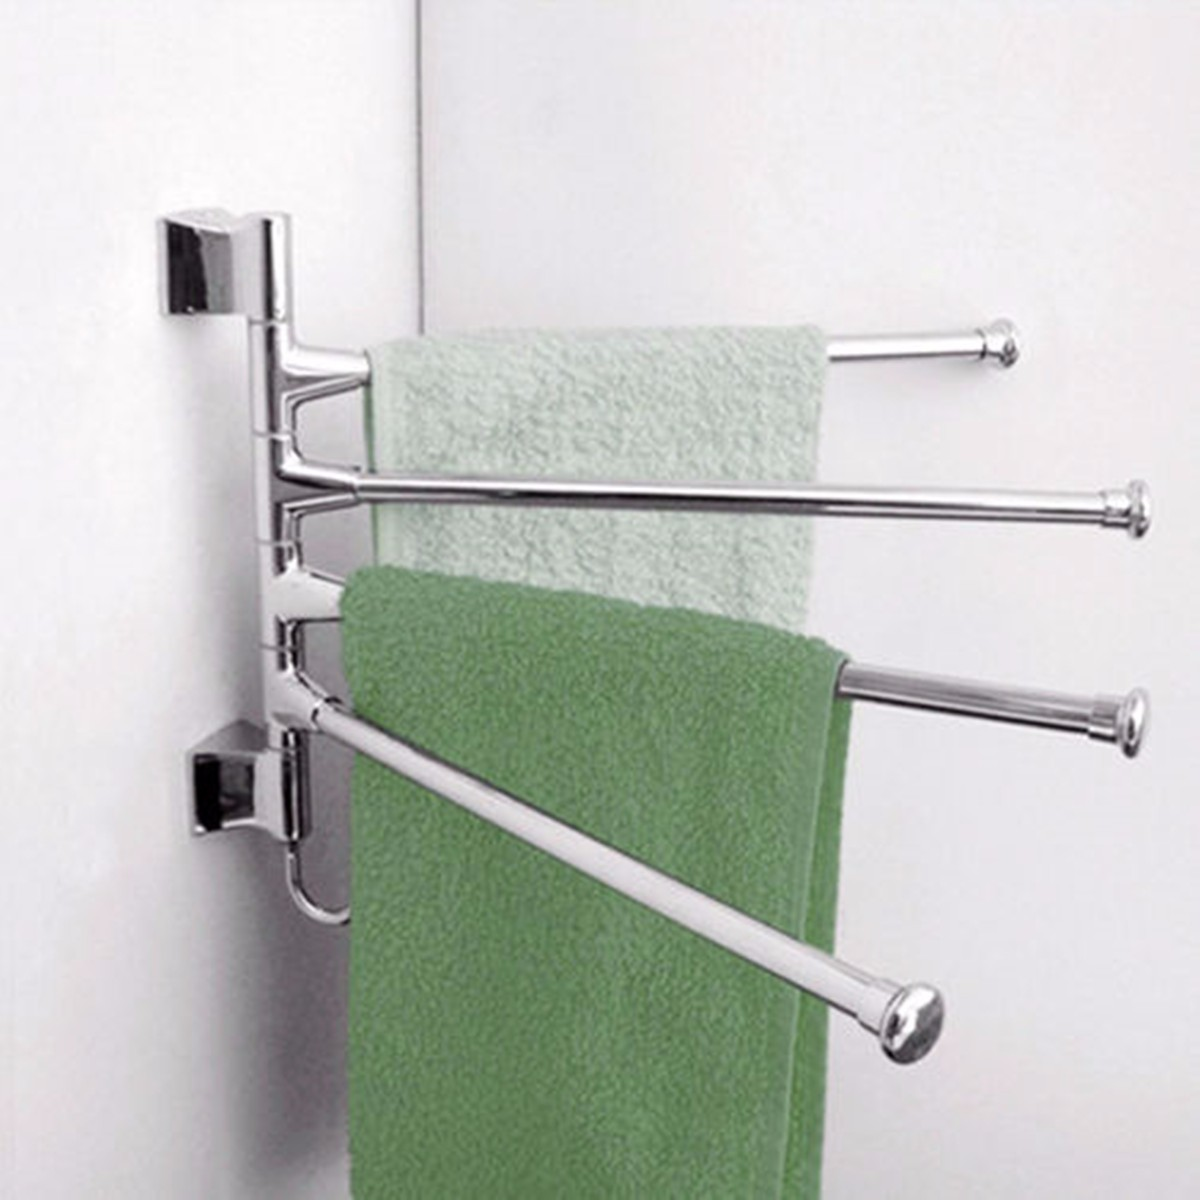 3 Lyer Wall Mounted Bathroom Towel Rack Swivel Towel